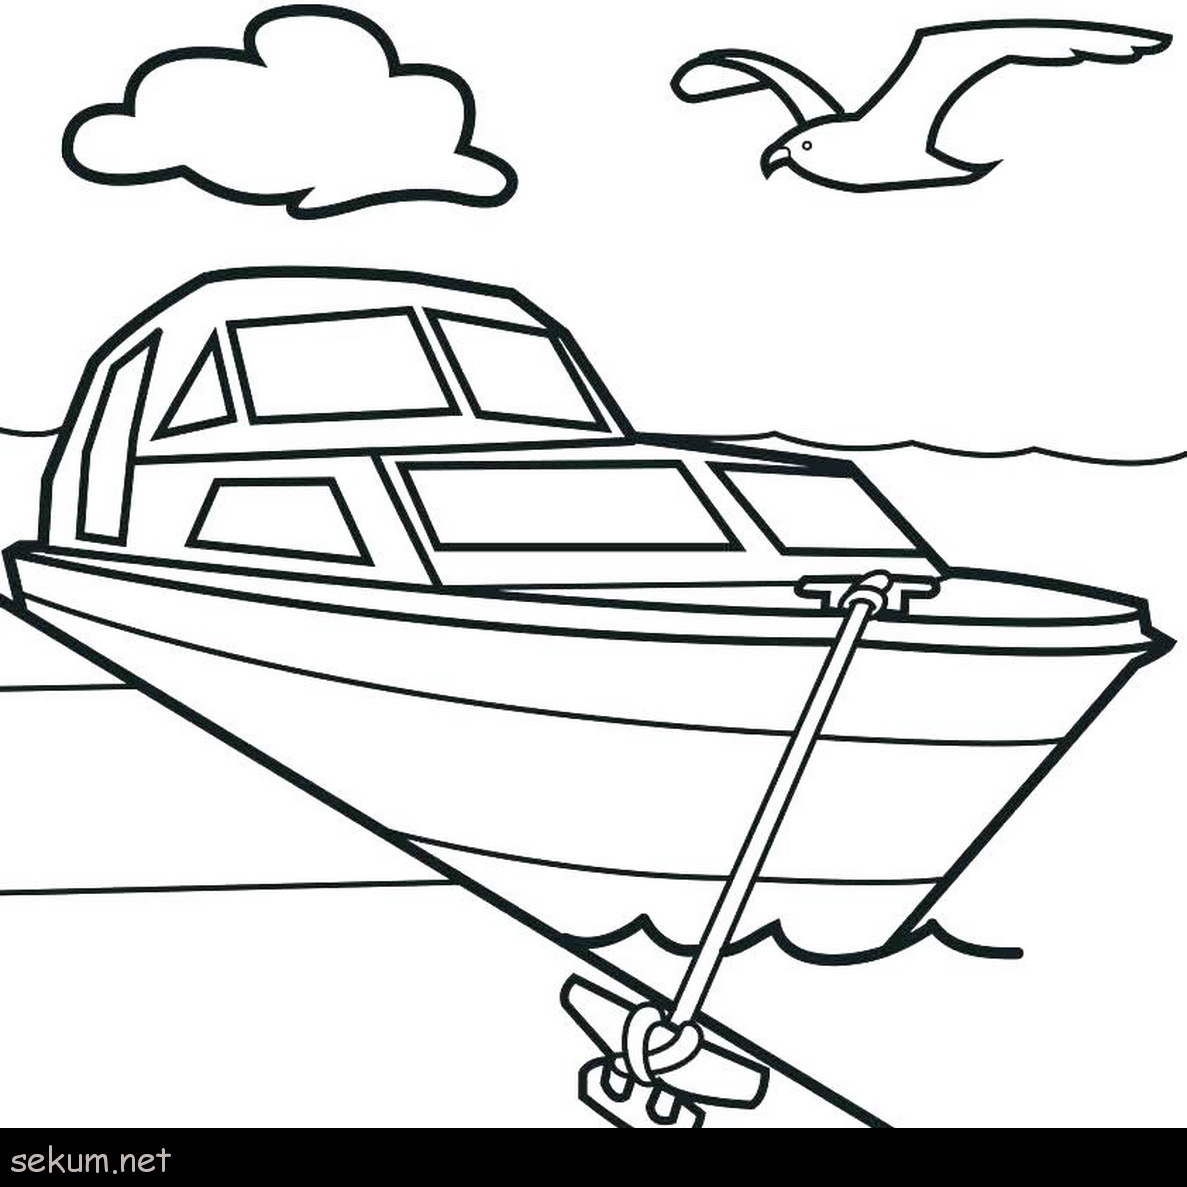 1187x1187 cruise ship coloring pages cruise ship coloring pages